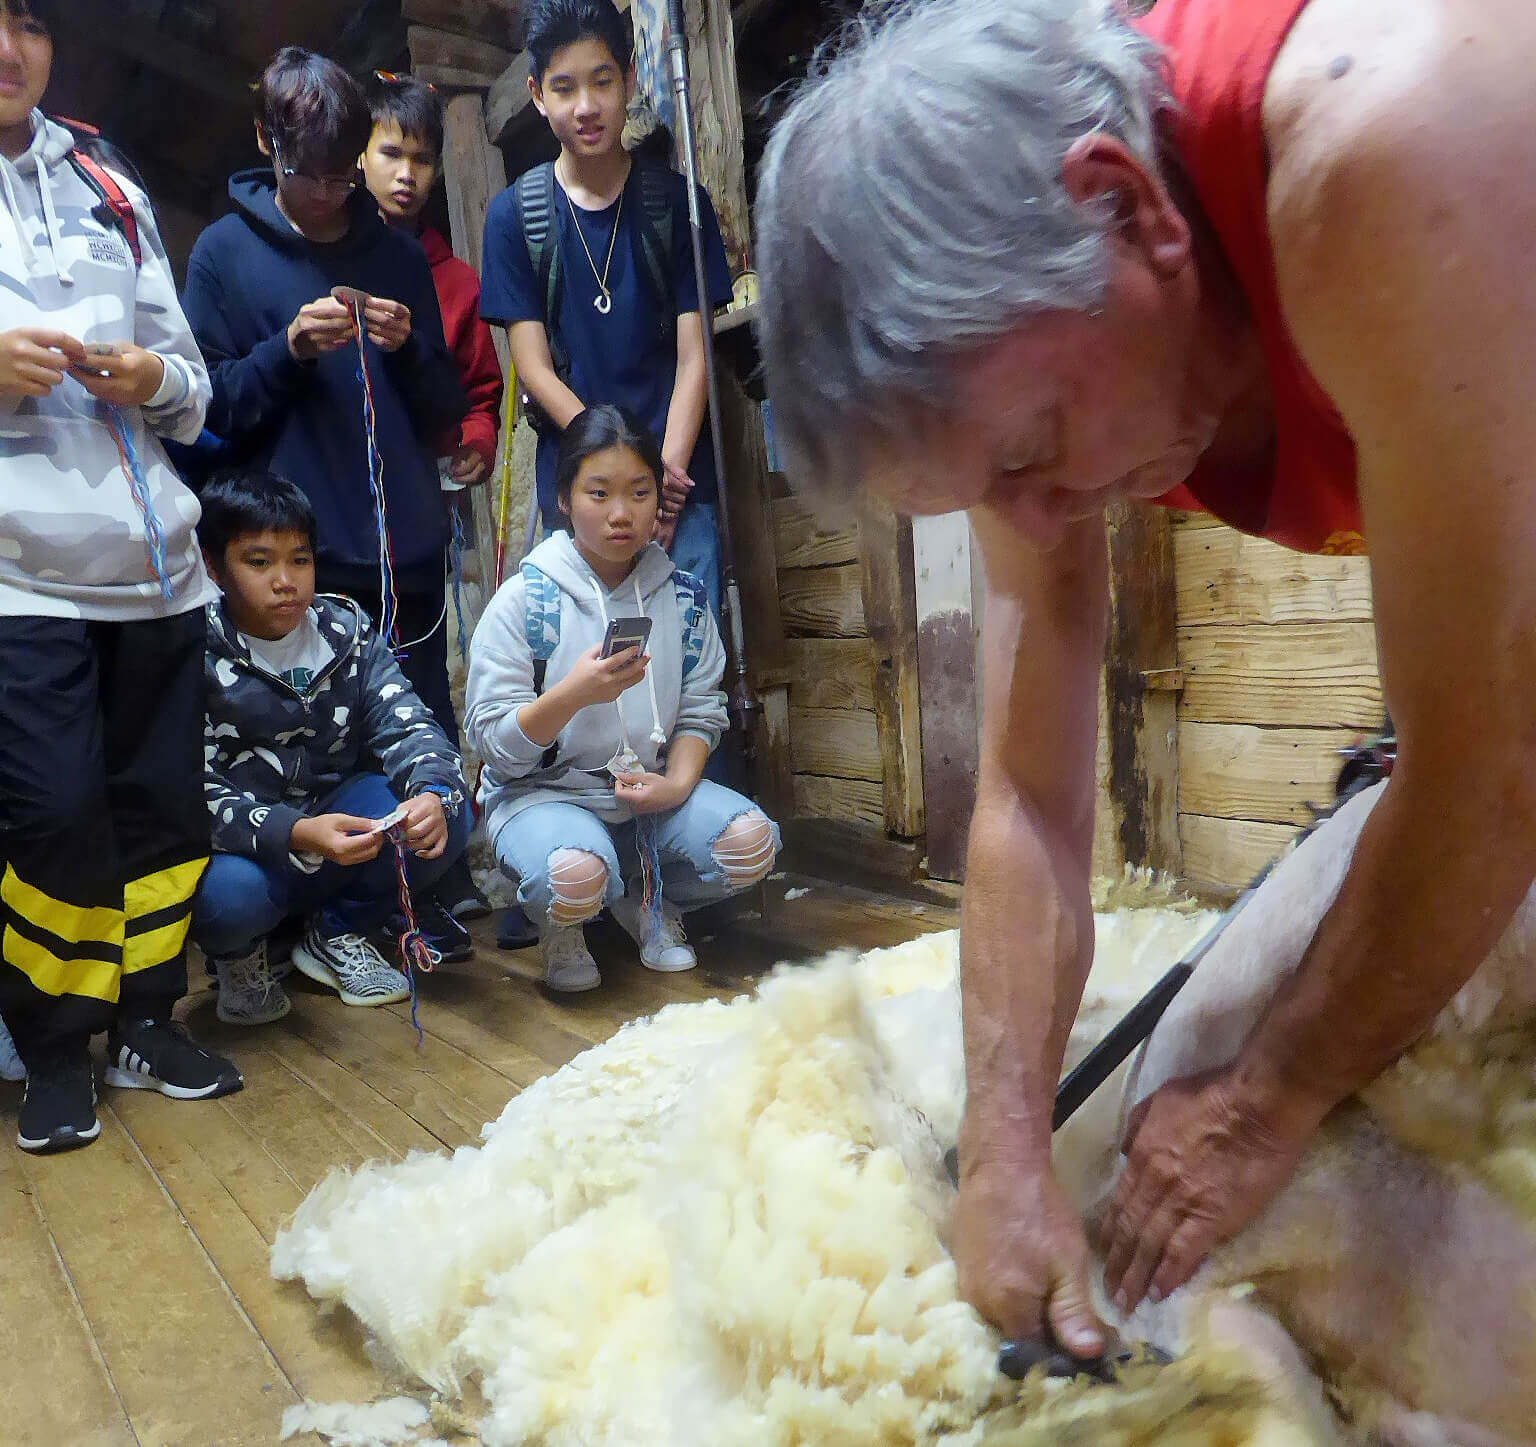 Graham Checkley shearing demo square tinypng 20190503.jpg